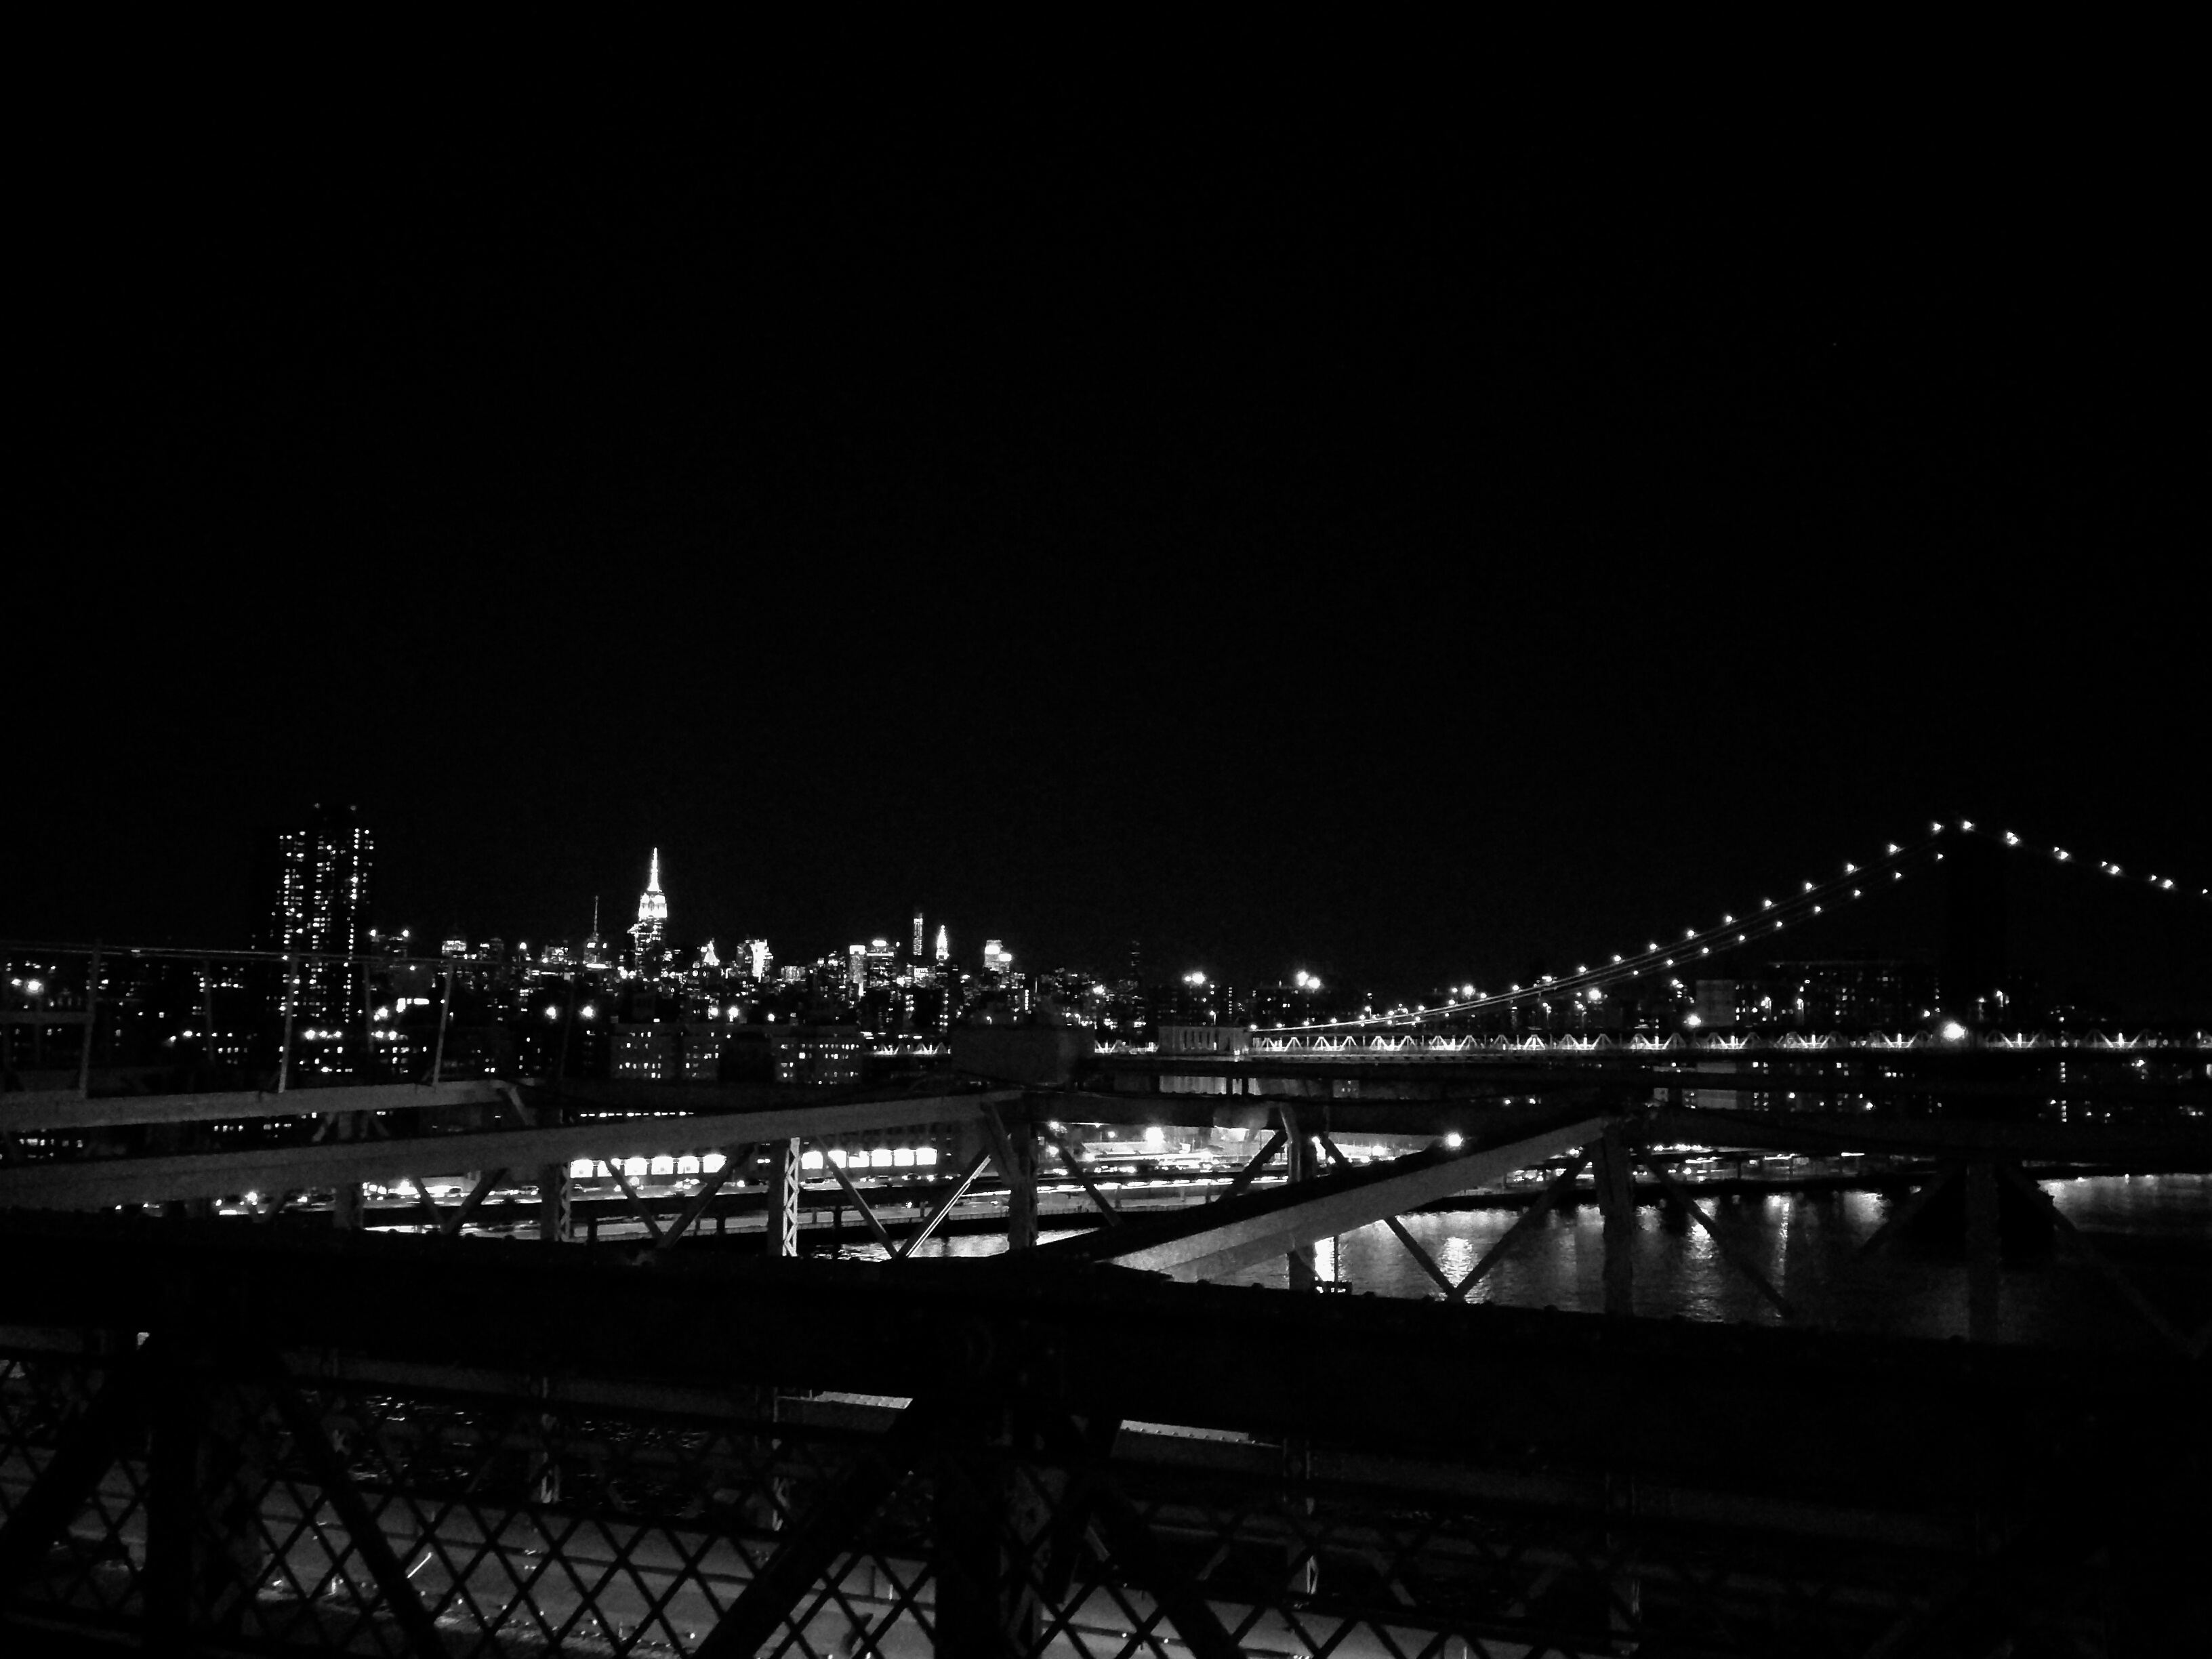 Brooklyn bridge with Manhattan in the distance. Black and white filter applied.